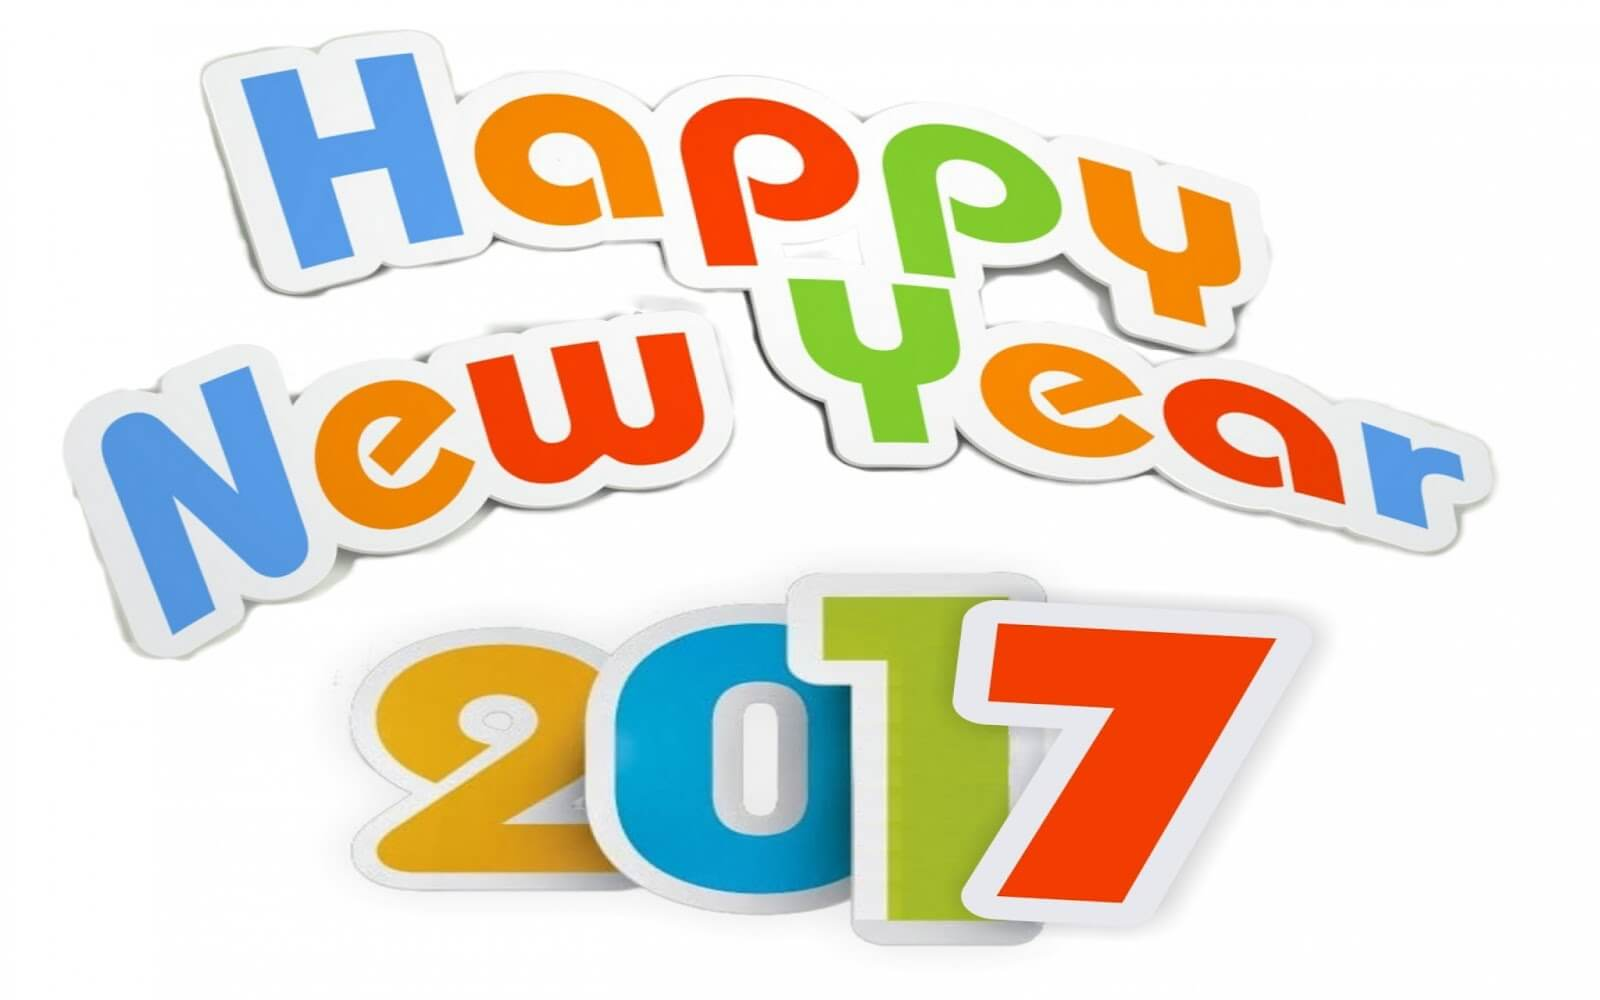 Best Happy new year images